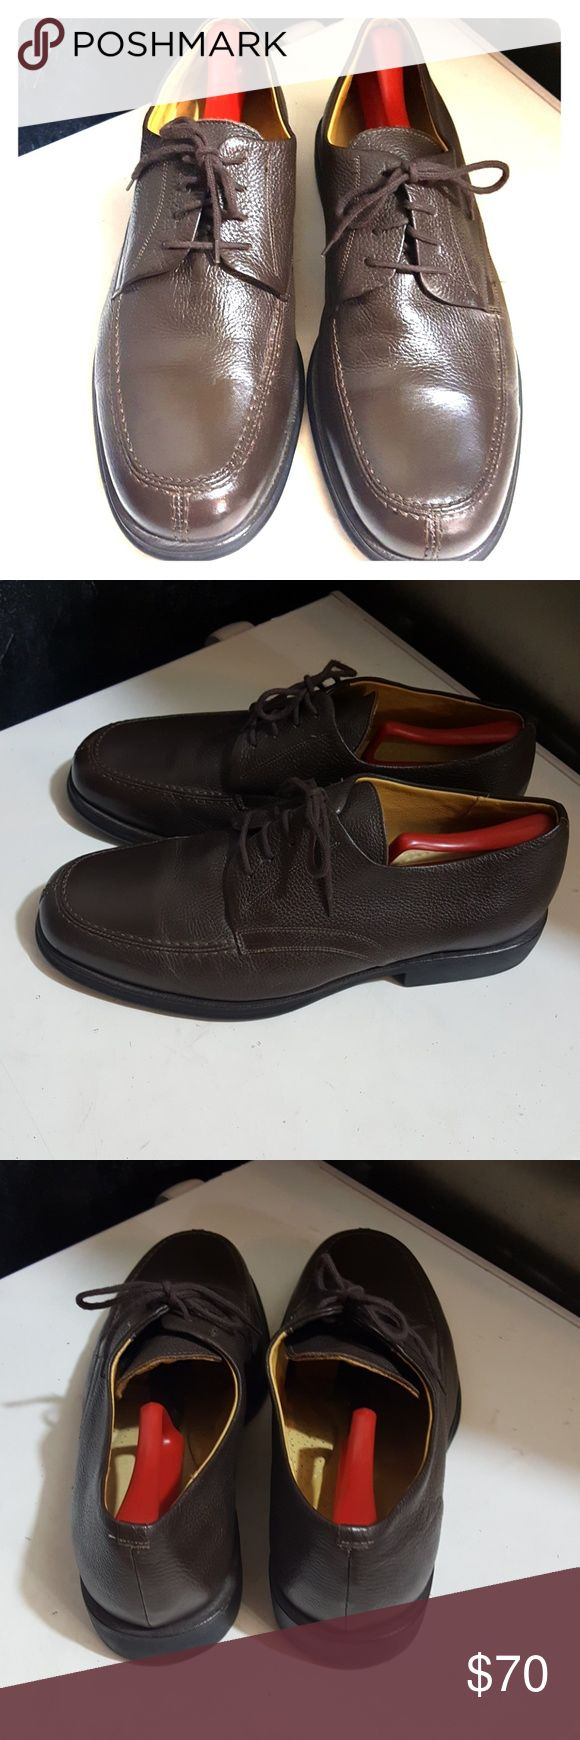 Sandro Moscoloni men's shoes size 13 extra wide Sandro Moscoloni brown leather men's shoes size 13 EEE.  Made in Brazil they are very comfortable and they are in great condition. I'm selling them at an excellent price so get them today! Sandro Moscoloni Shoes Oxfords & Derbys